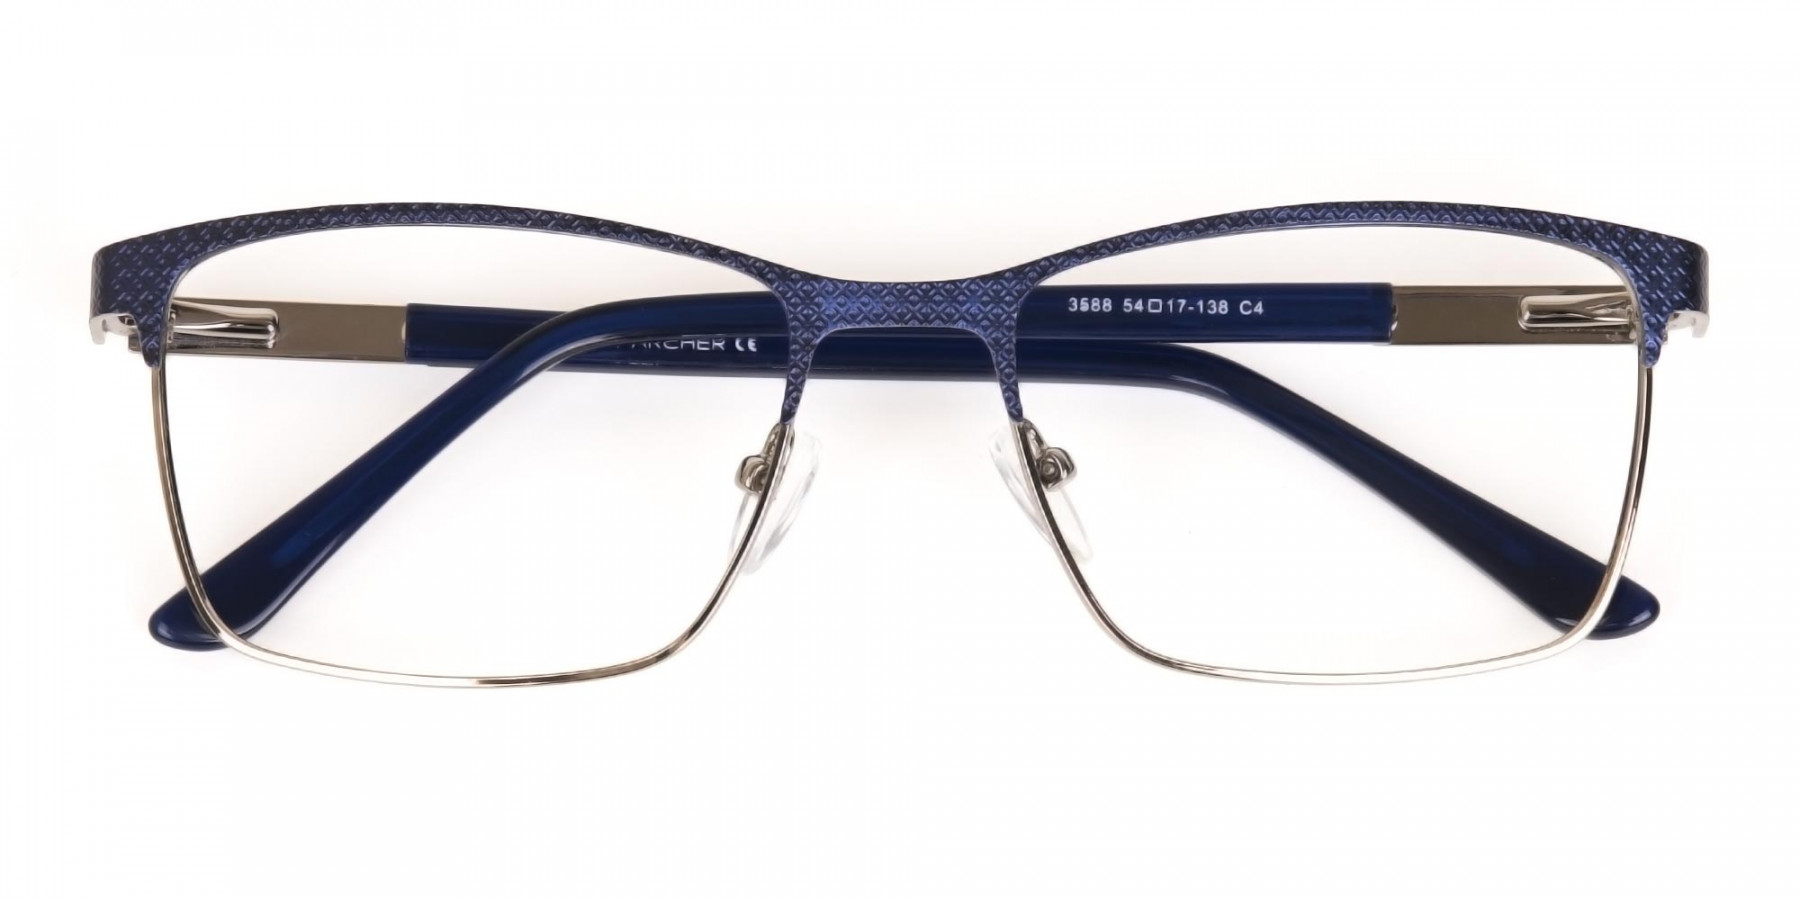 Royal Blue & Gunmetal Rectangular Metal Glasses-1